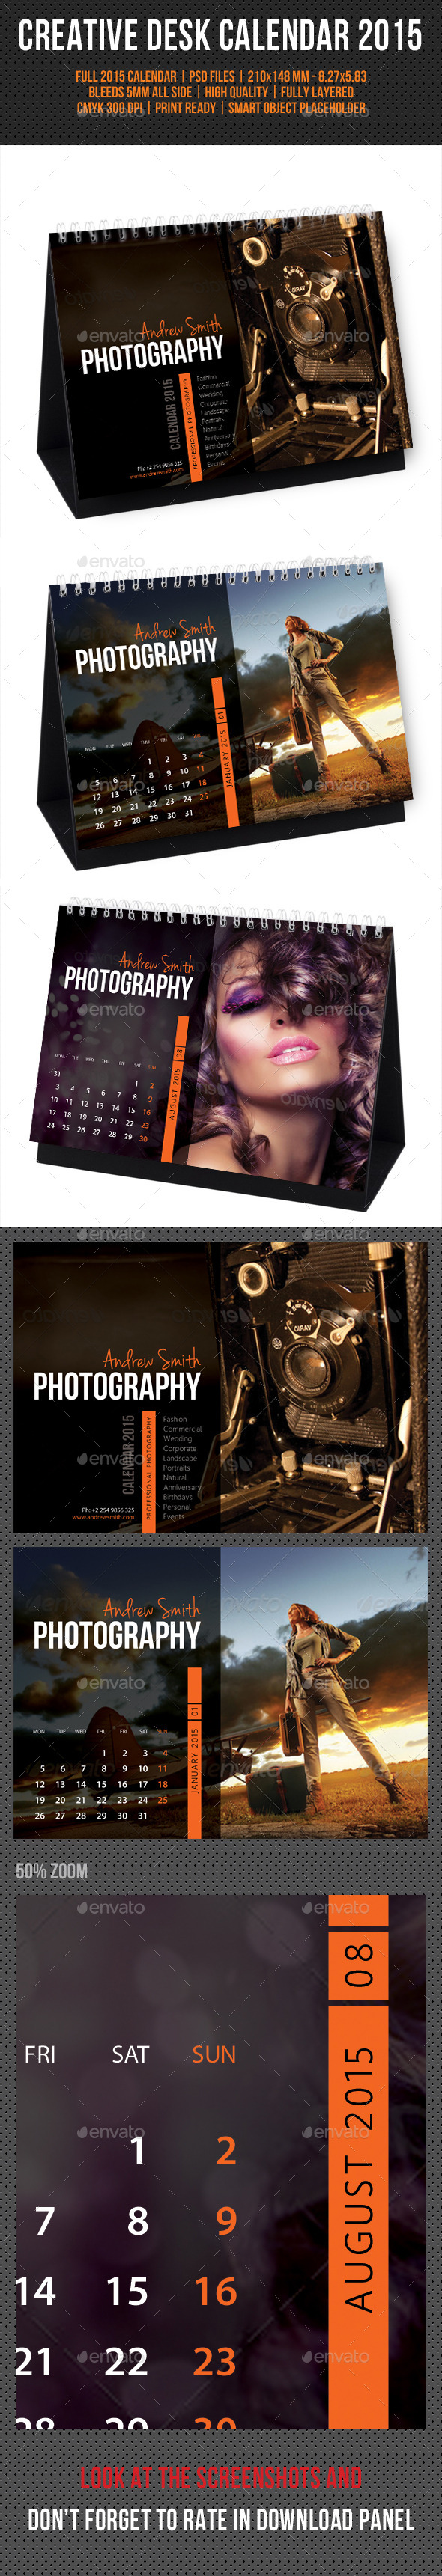 GraphicRiver Creative Desk Calendar 2015 V10 9846401